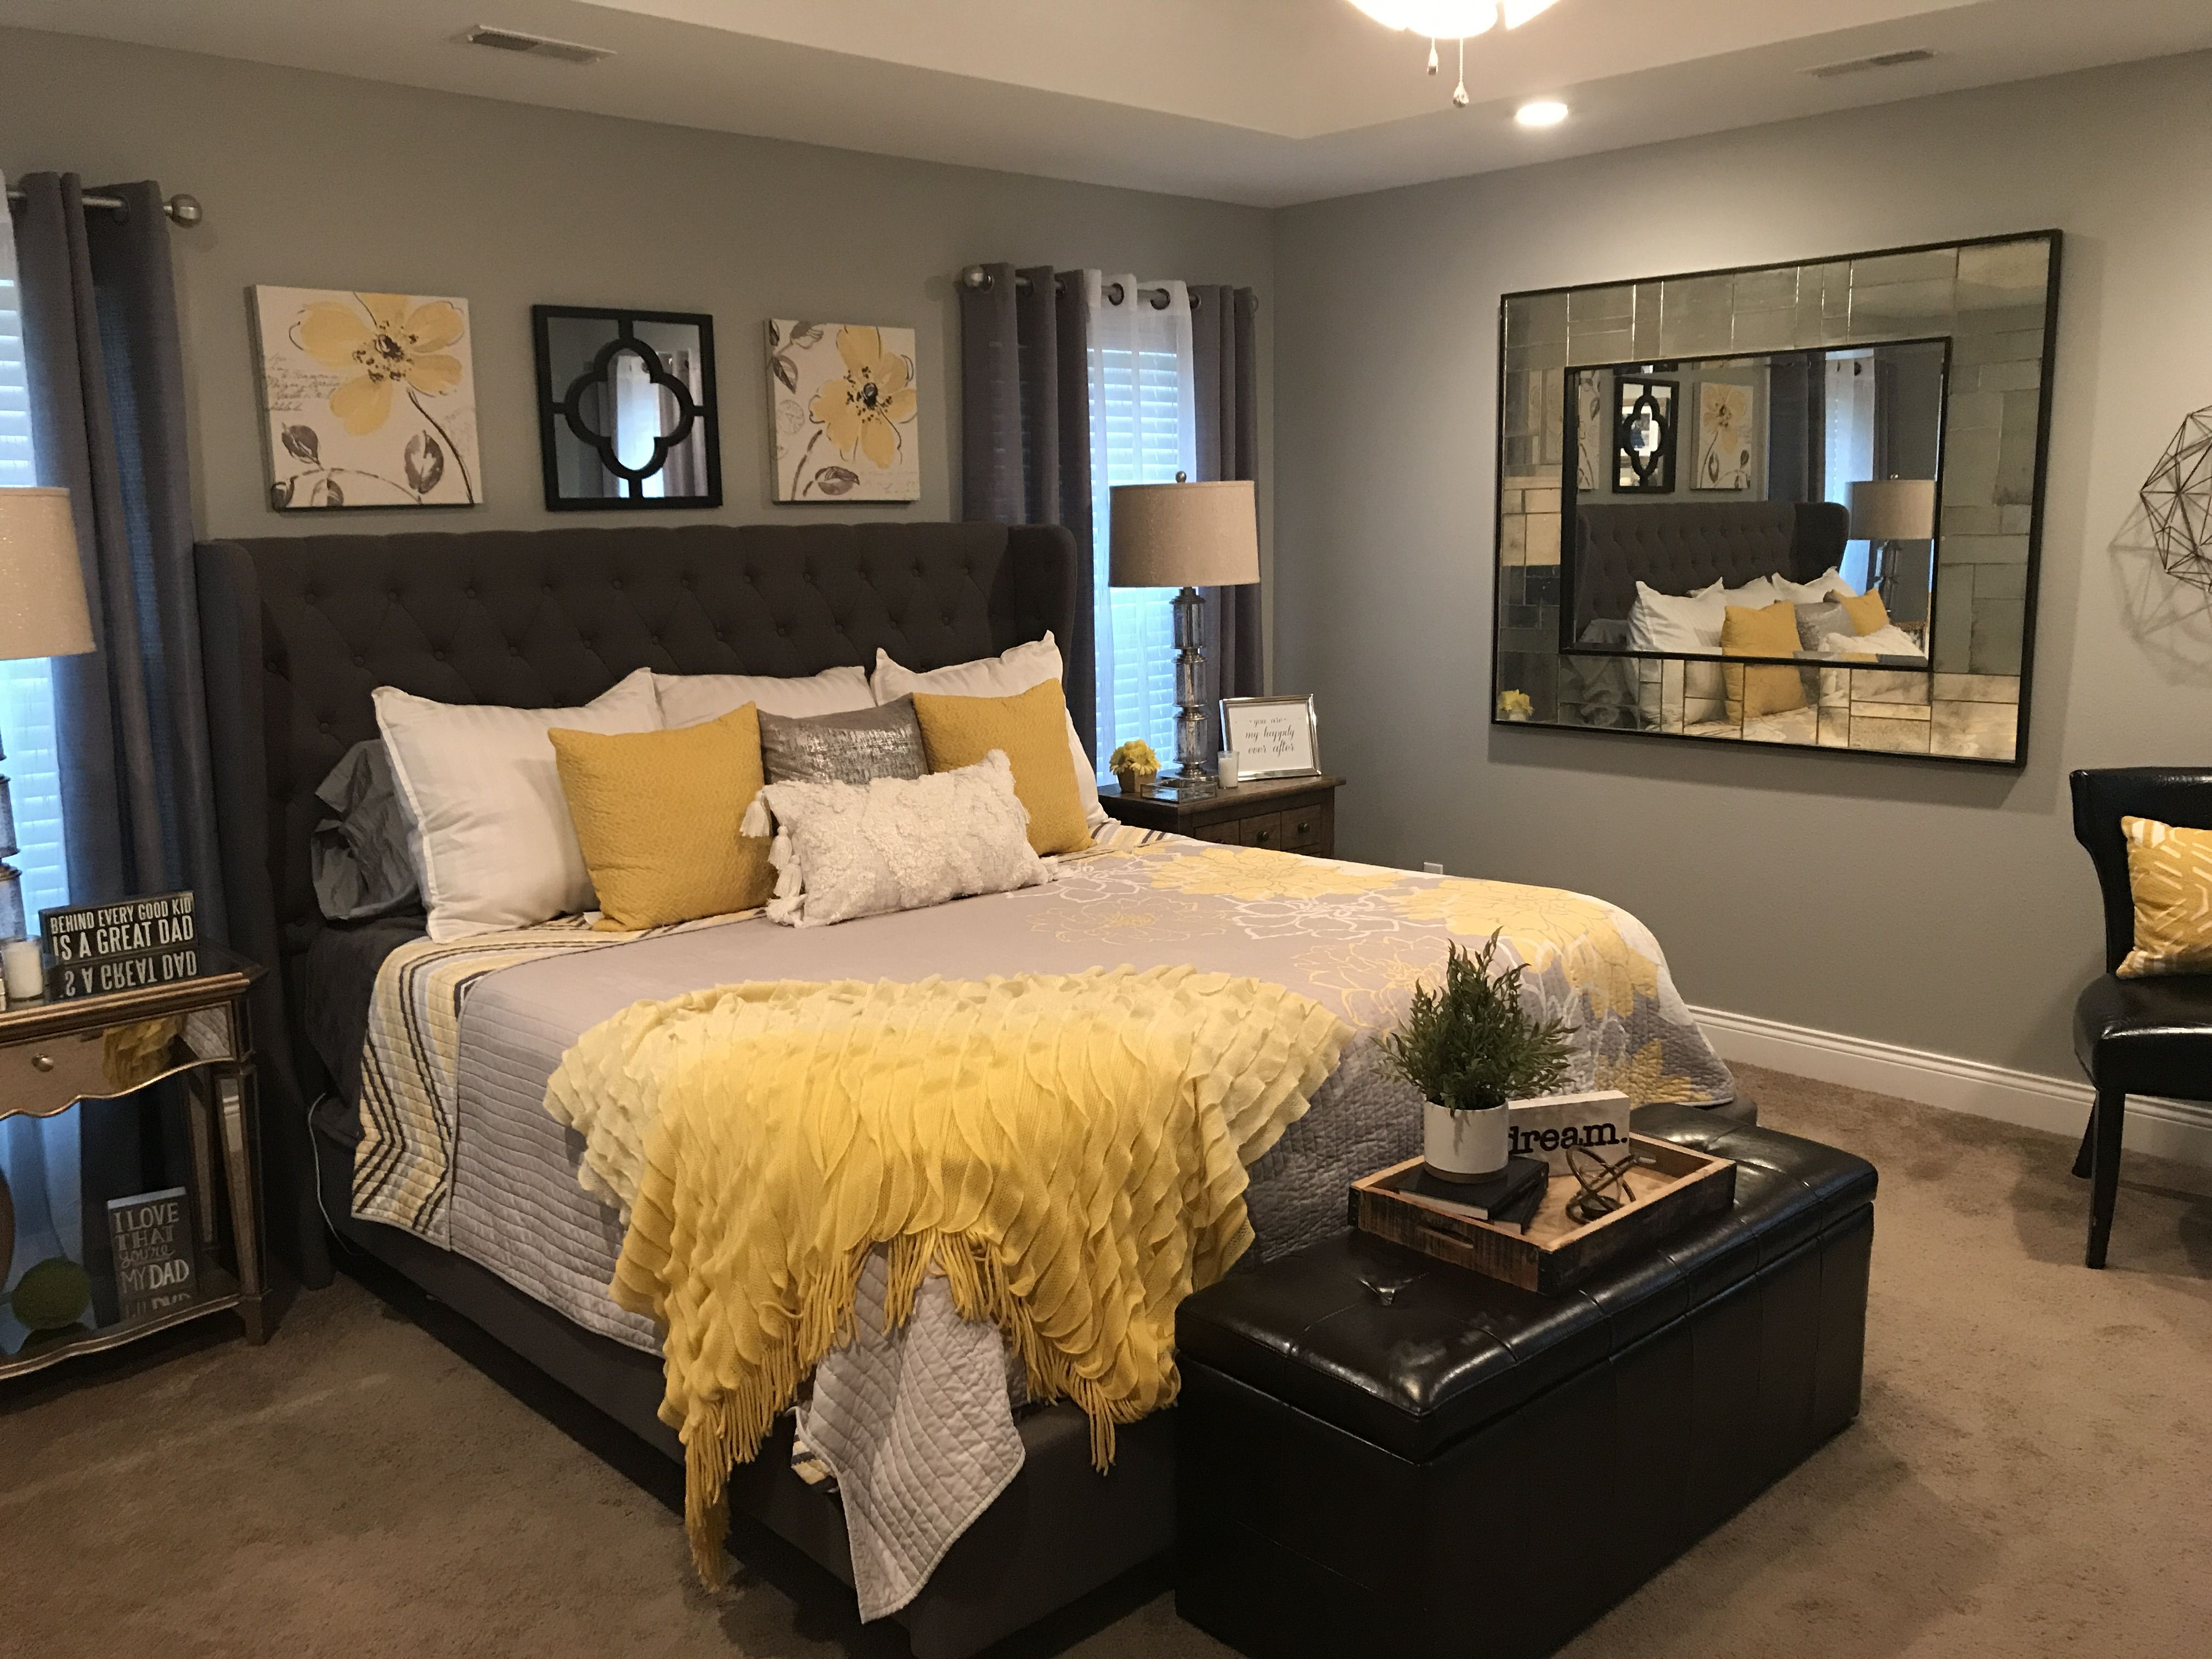 Pin by Cori Wray on Bedrooms | Yellow bedroom decor ...